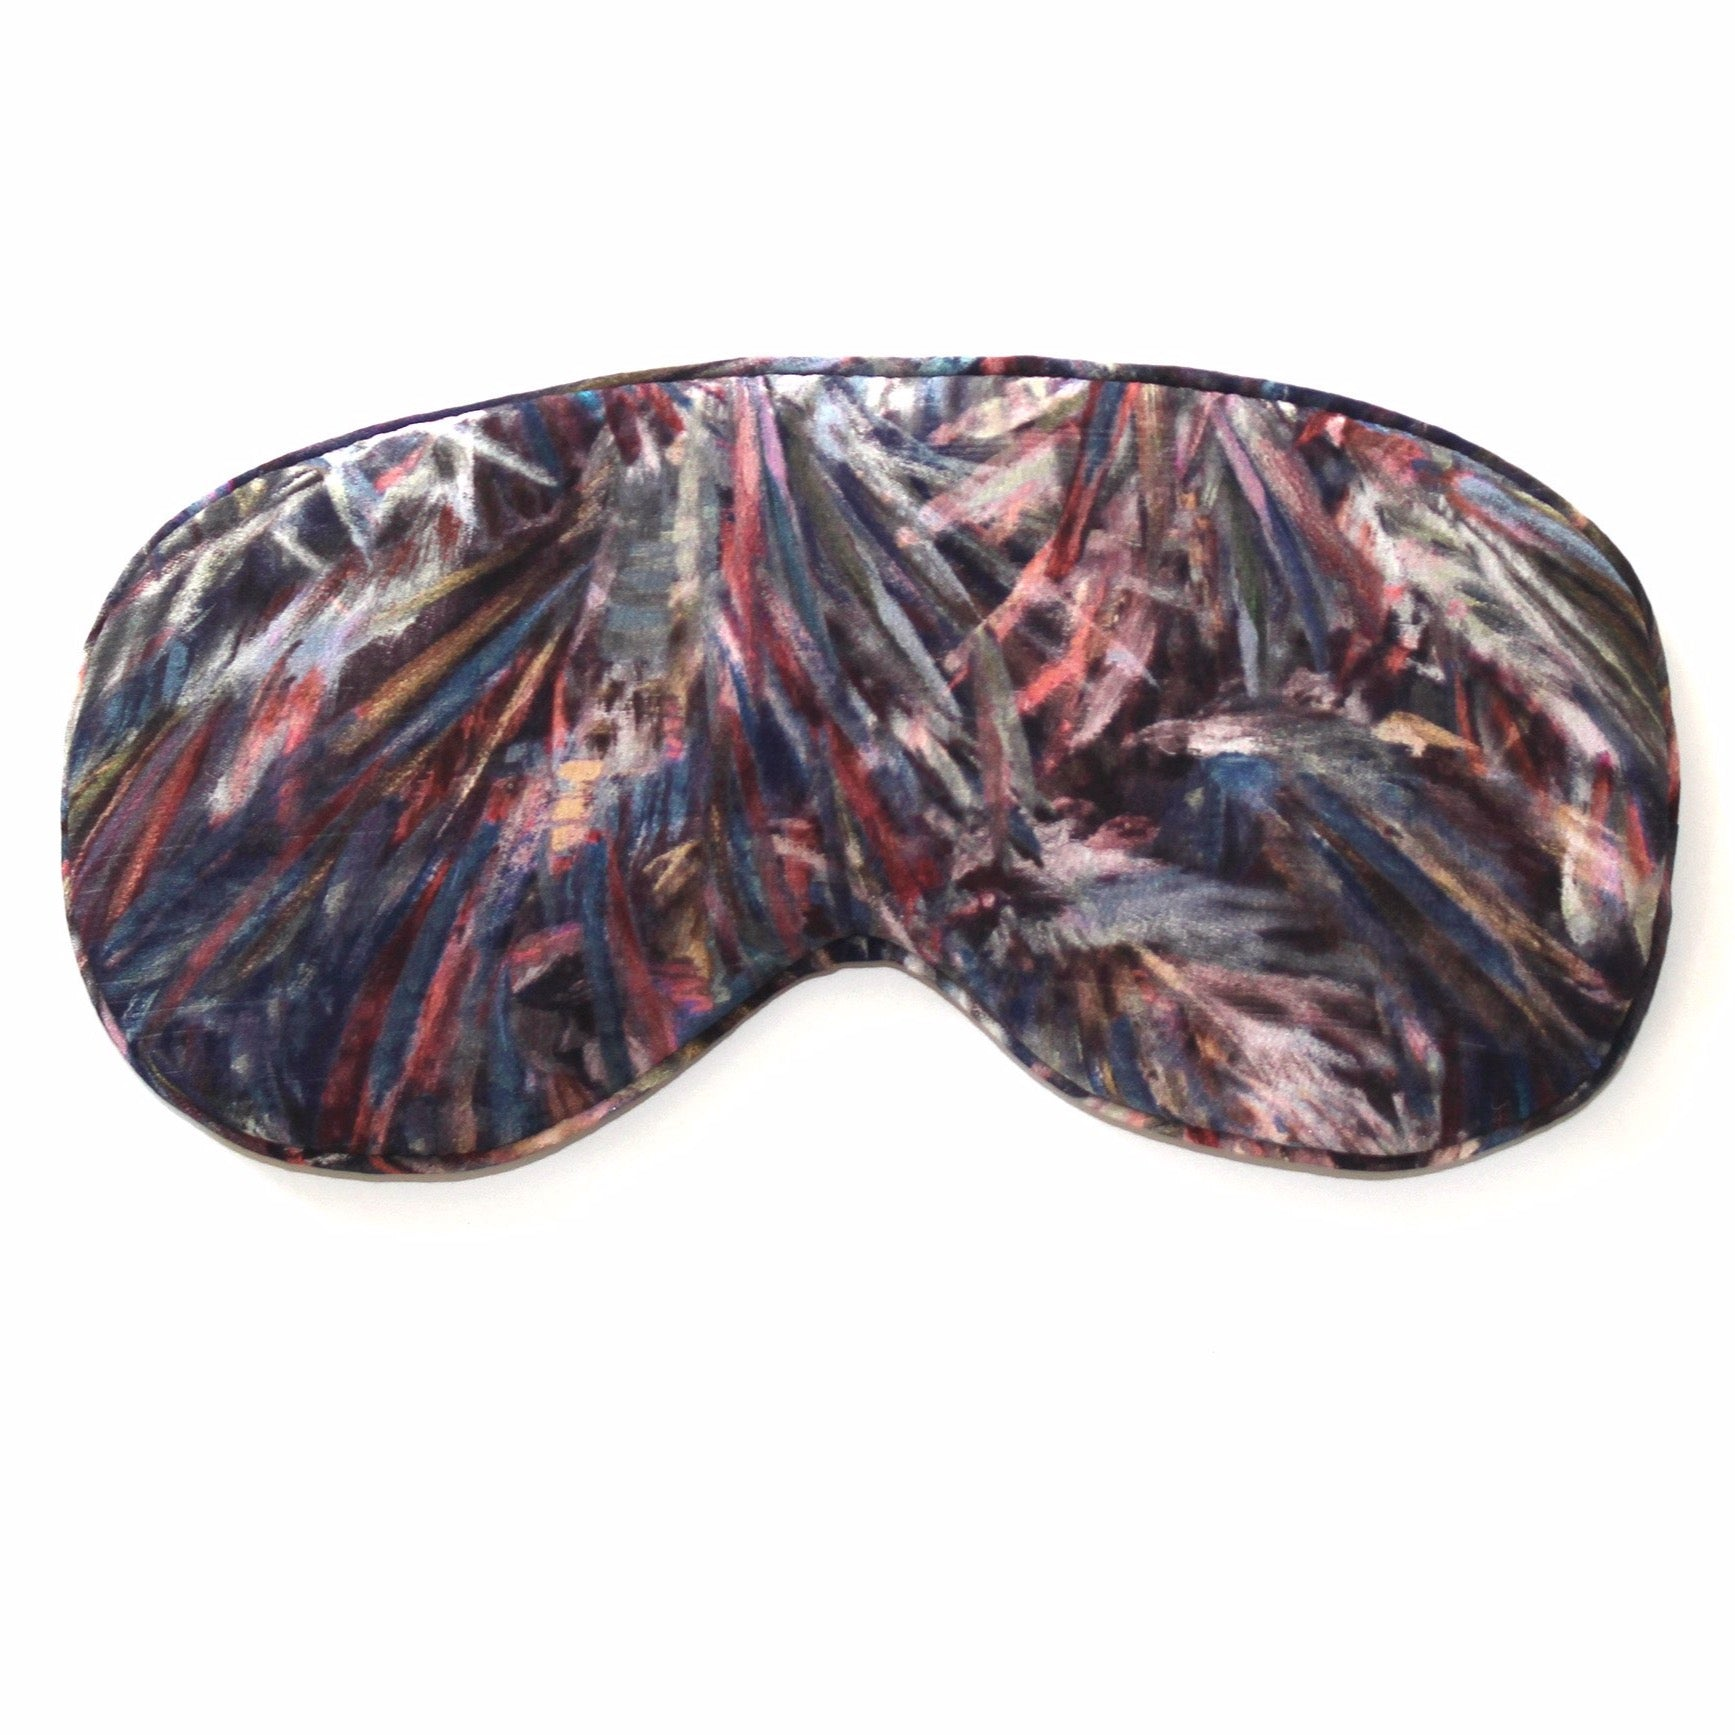 Hypnos Silk Sleep Mask in Saxby Liberty Print